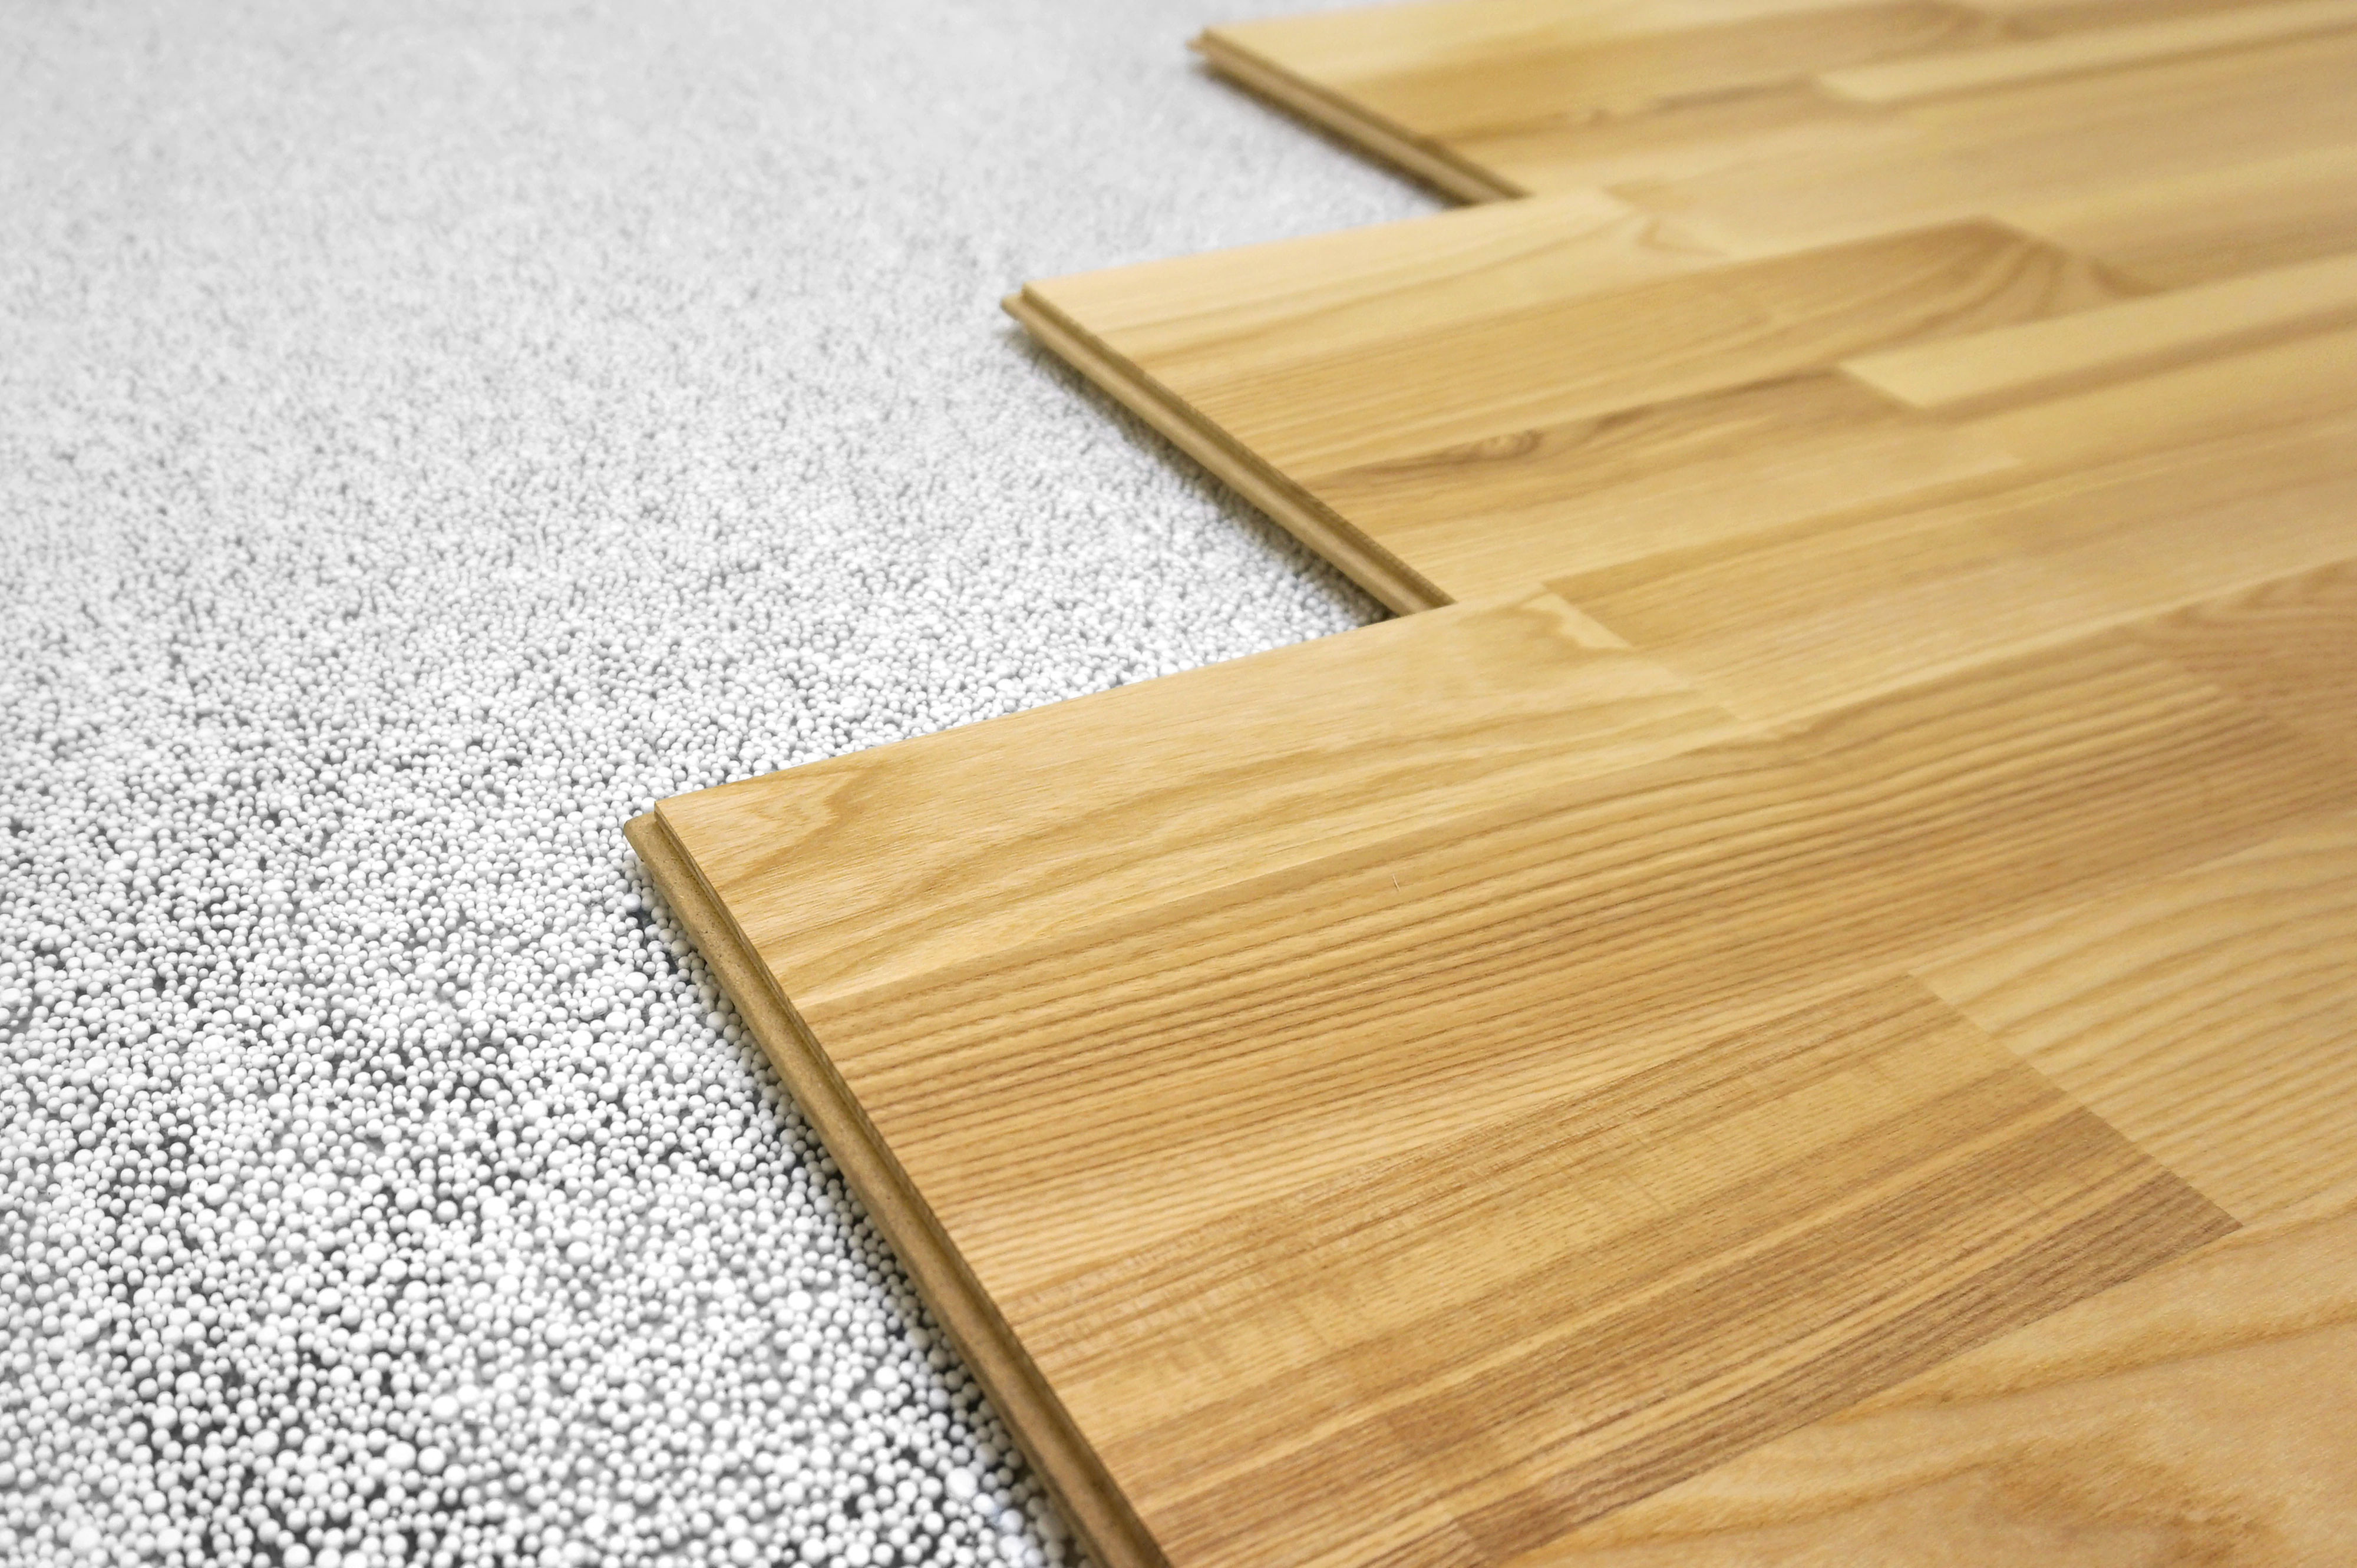 easy click hardwood flooring of what does it cost to install laminate flooring angies list inside wood lam